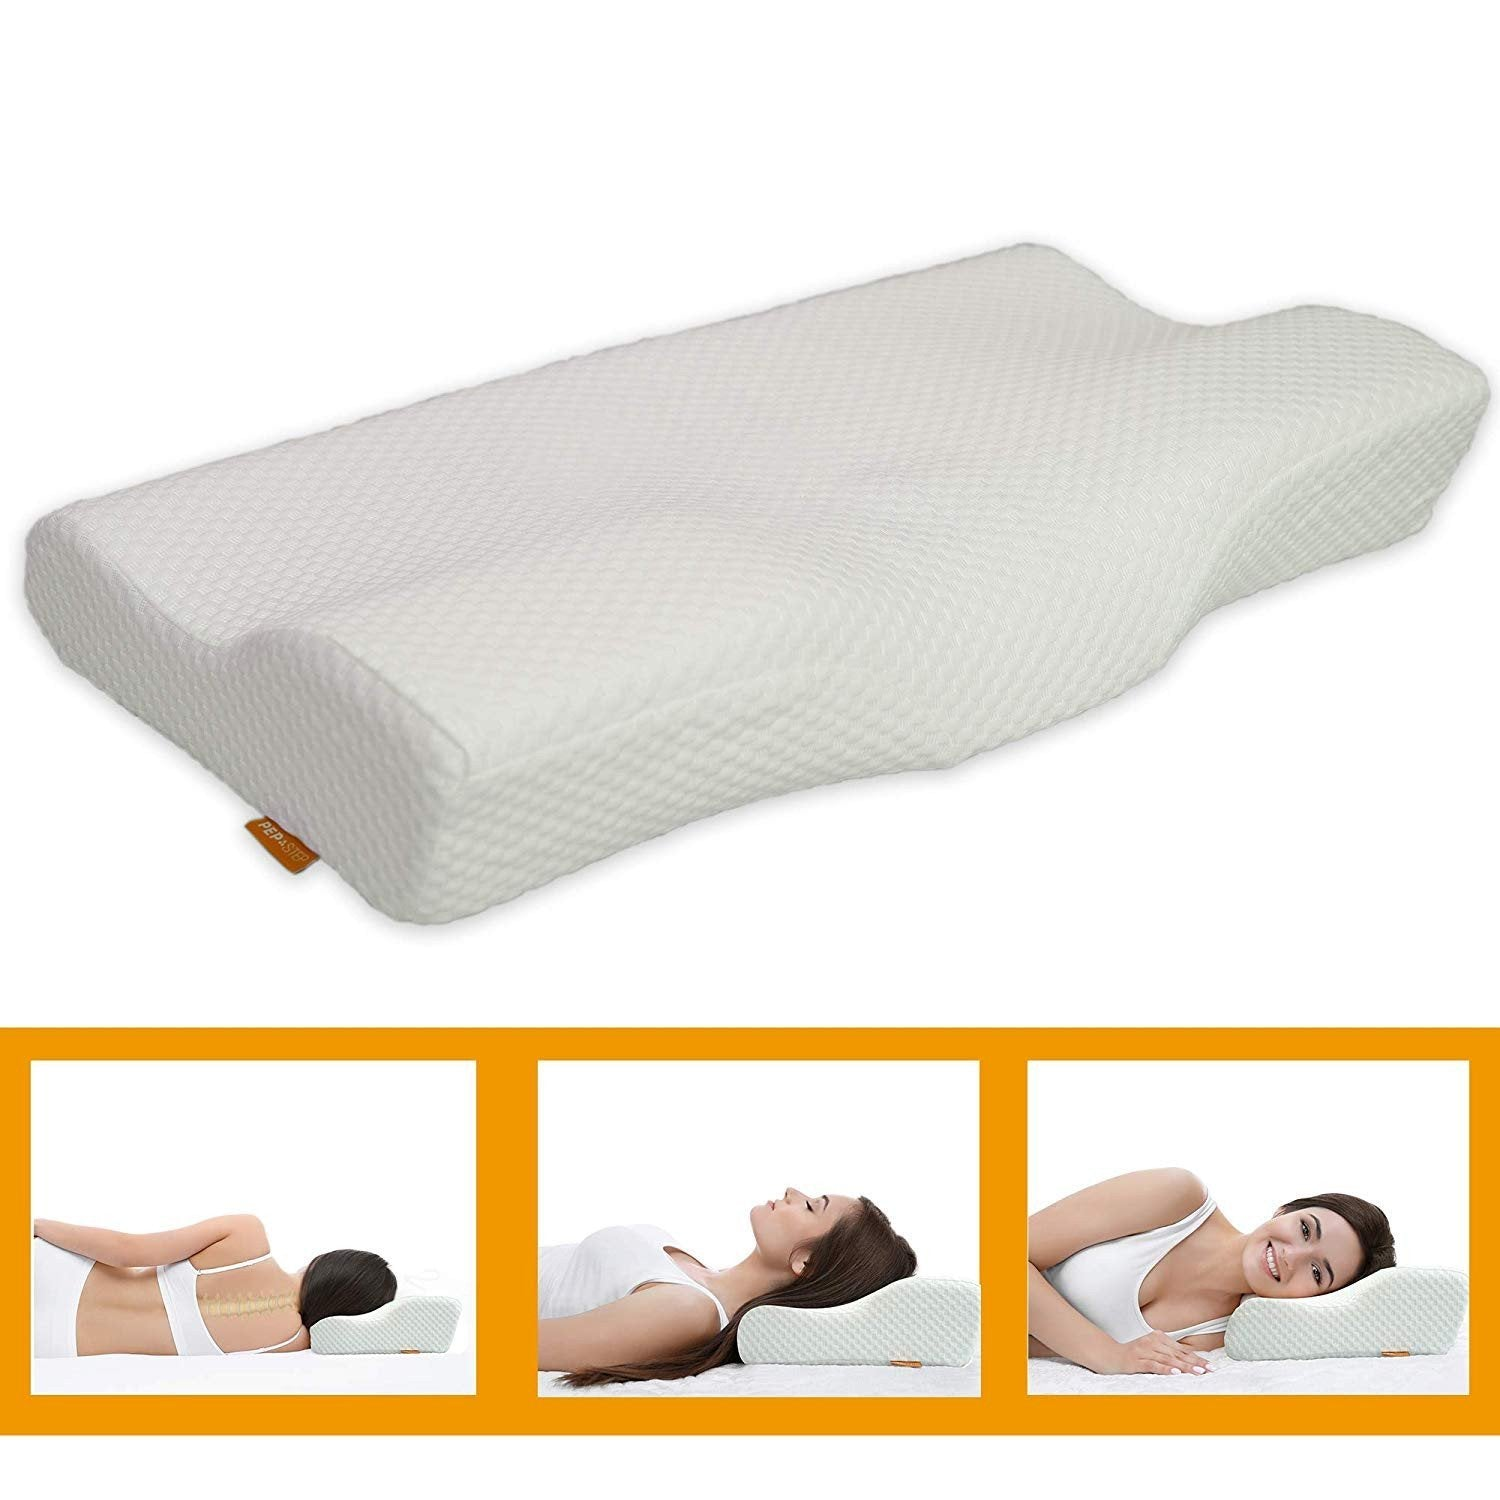 The Original Bamboo Cervical Pillow